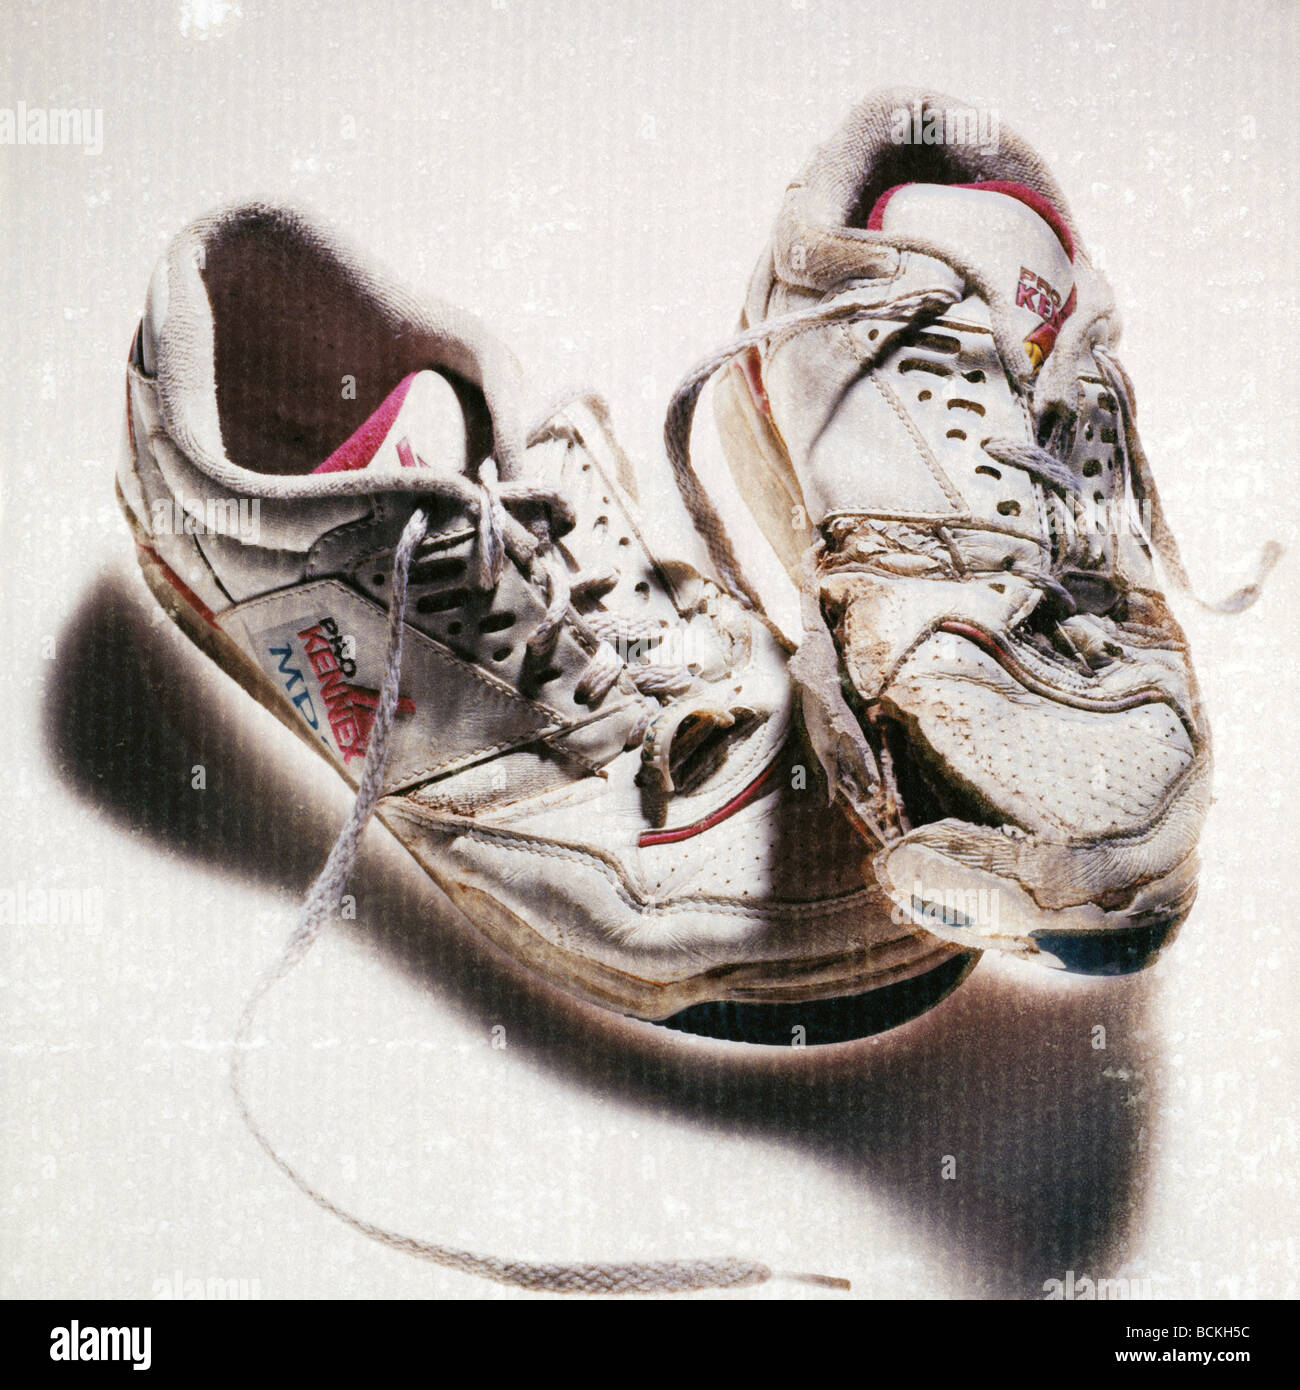 Tennis Shoes Photosamp; Images Alamy Old Stock 8kNnXwO0P